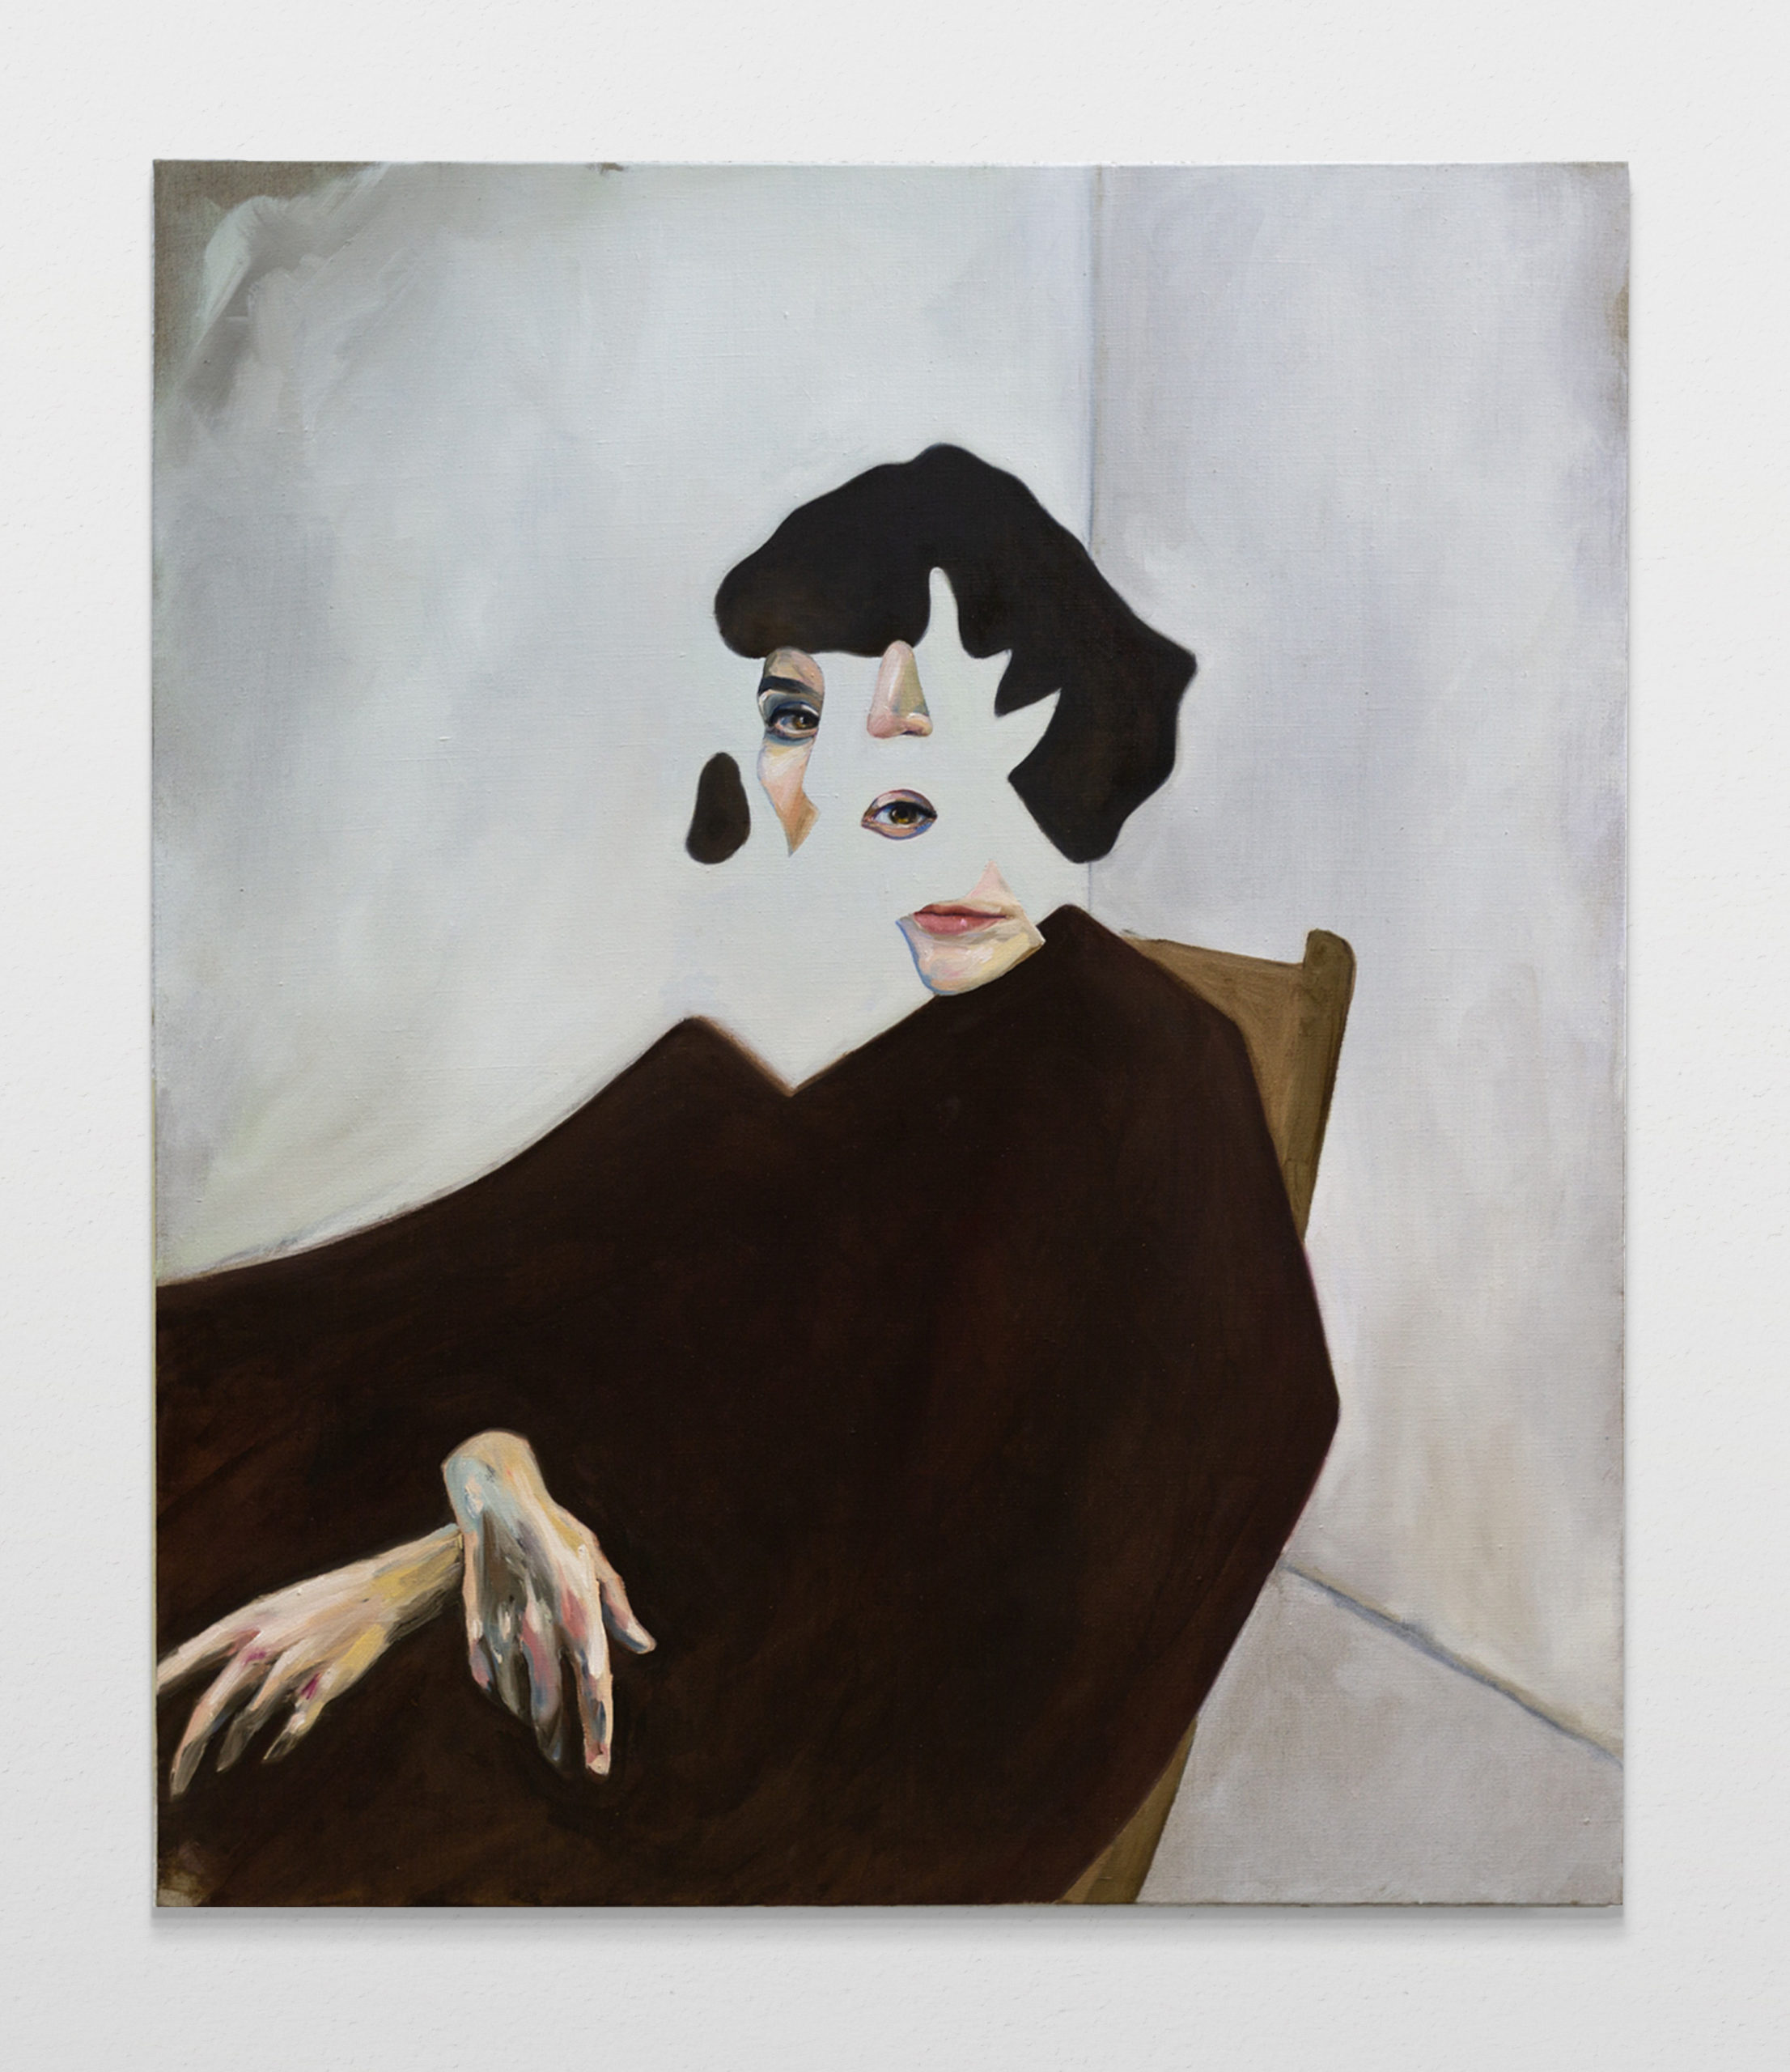 Seated woman, oil on linen, 120x100cm